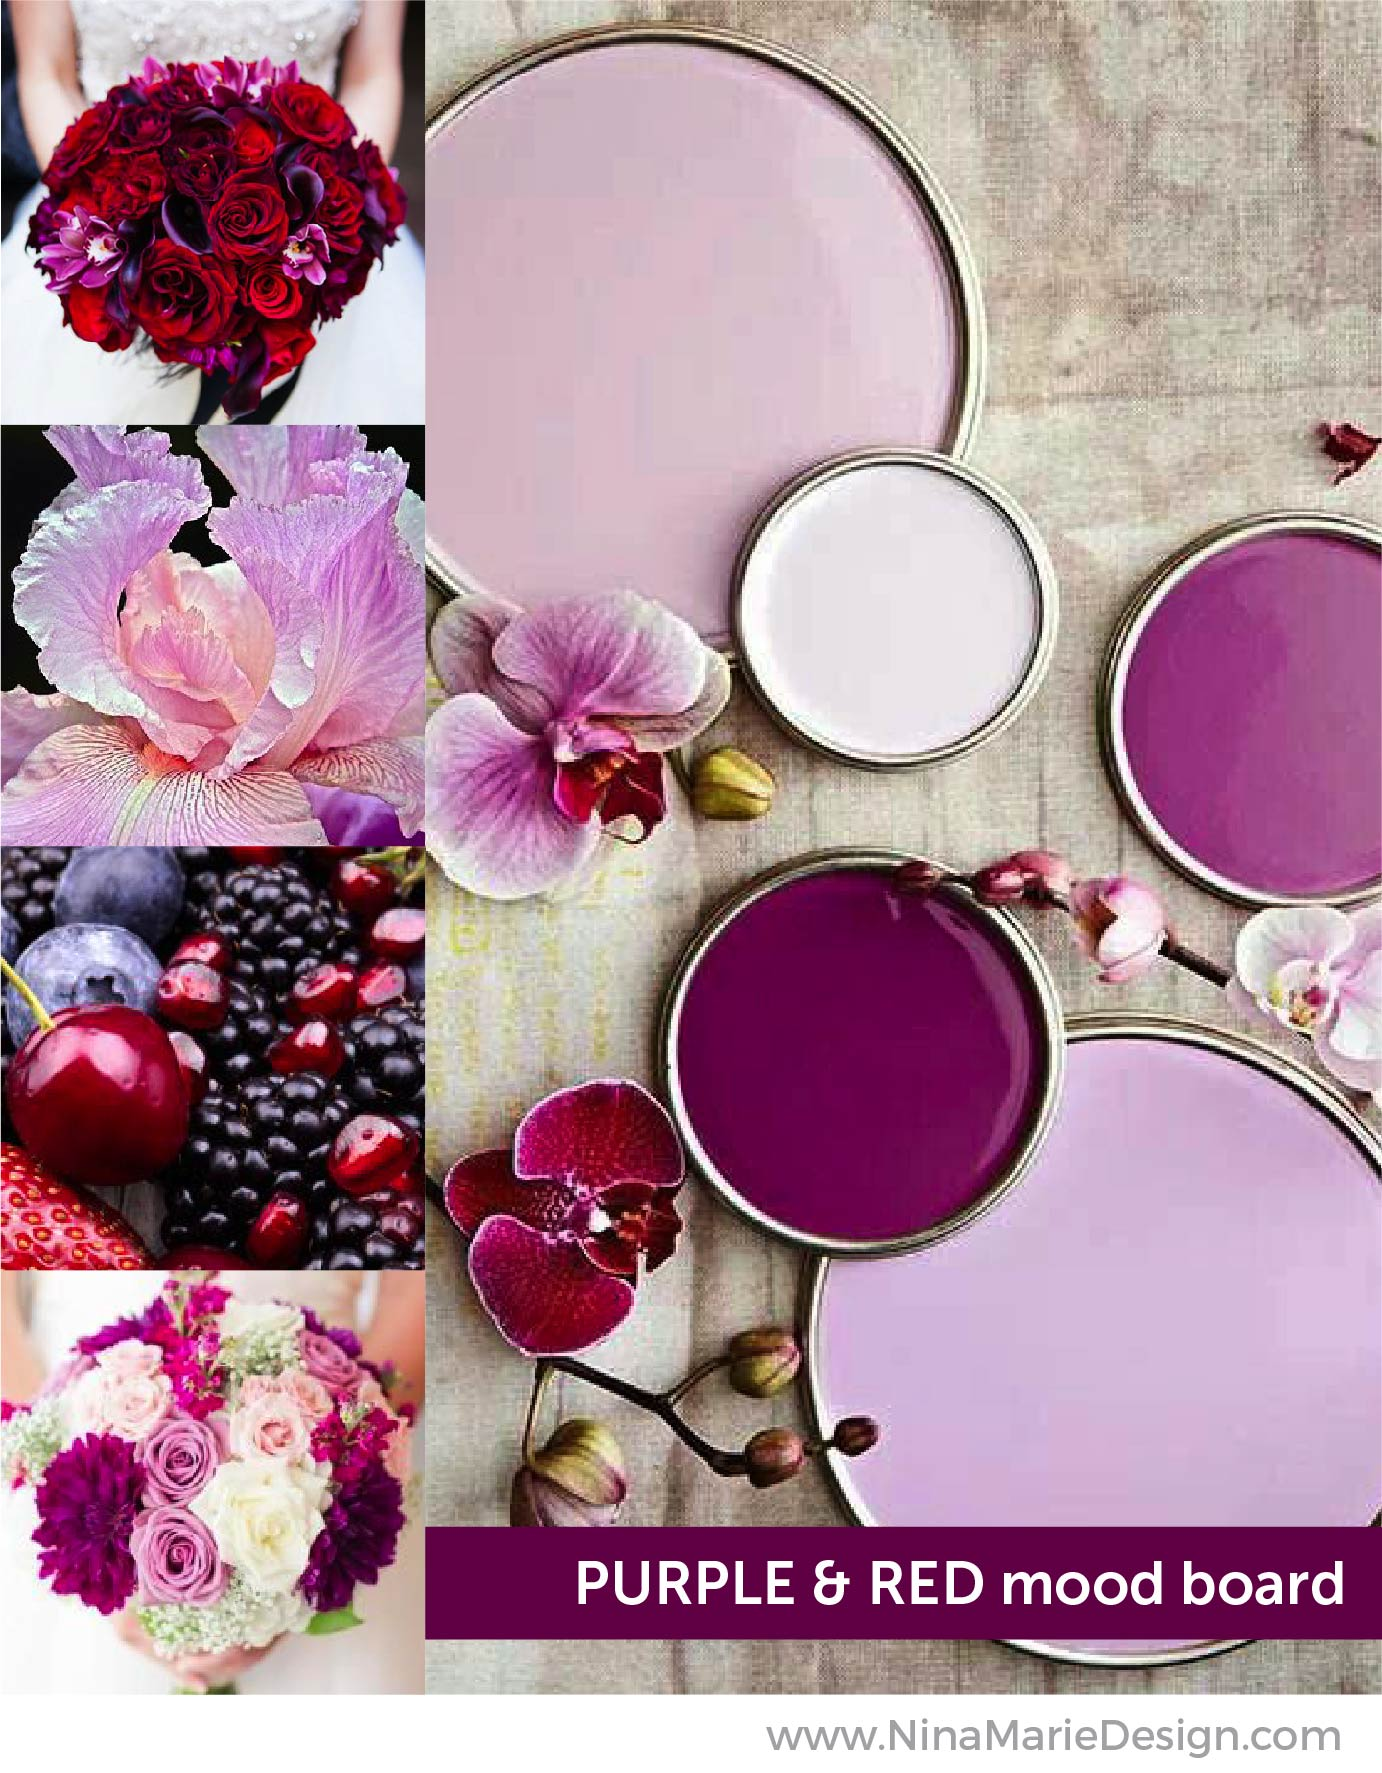 Purple and Red Mood Board | Nina-Marie Design